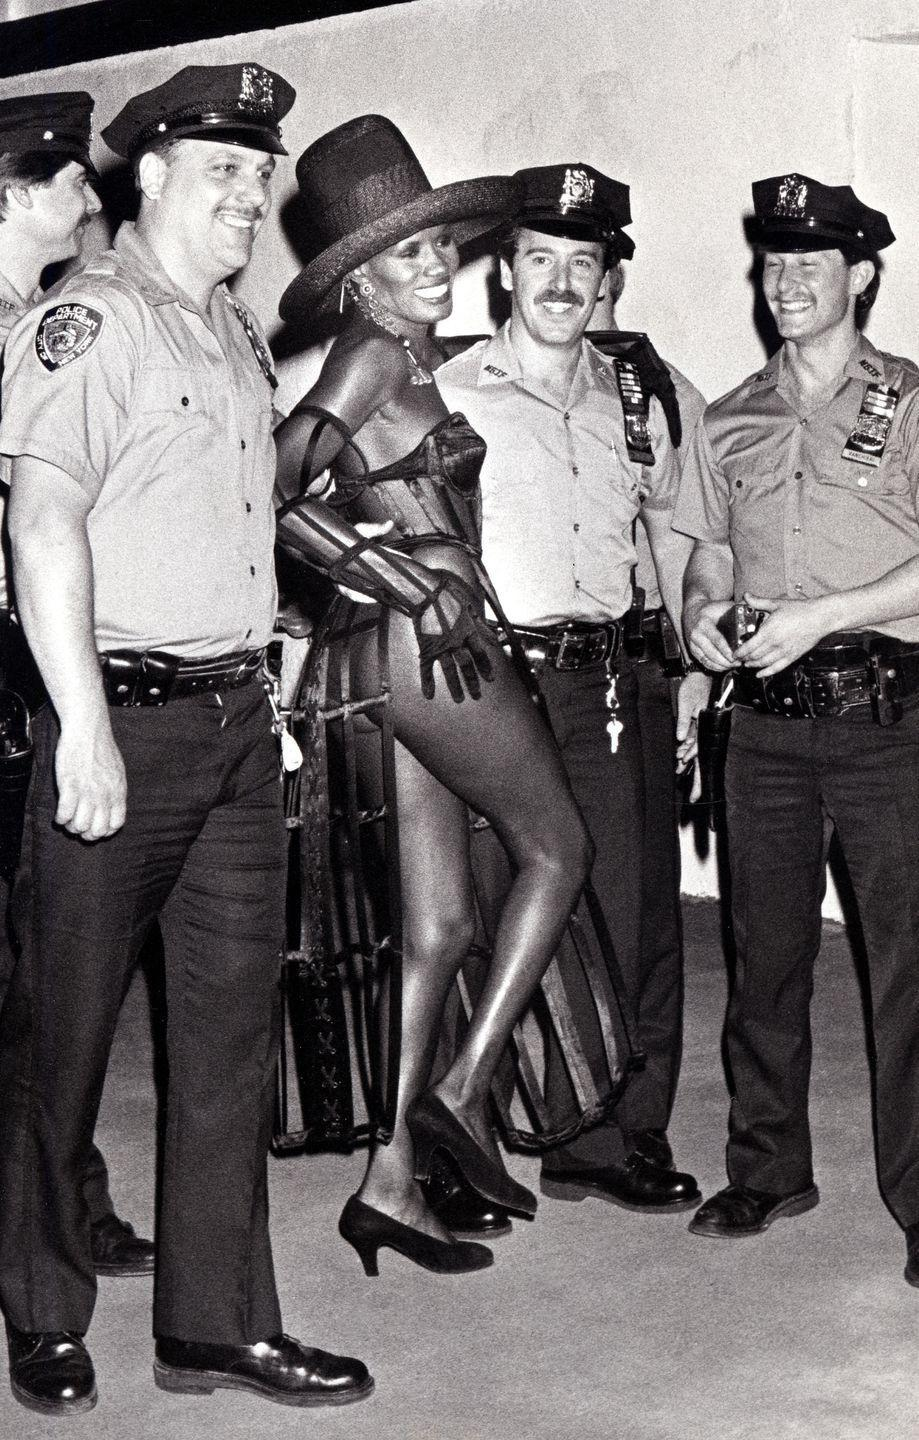 <p>Model Grace Jones struck a pose with New York City Police Officers at the 1989 International Rock Awards. </p>